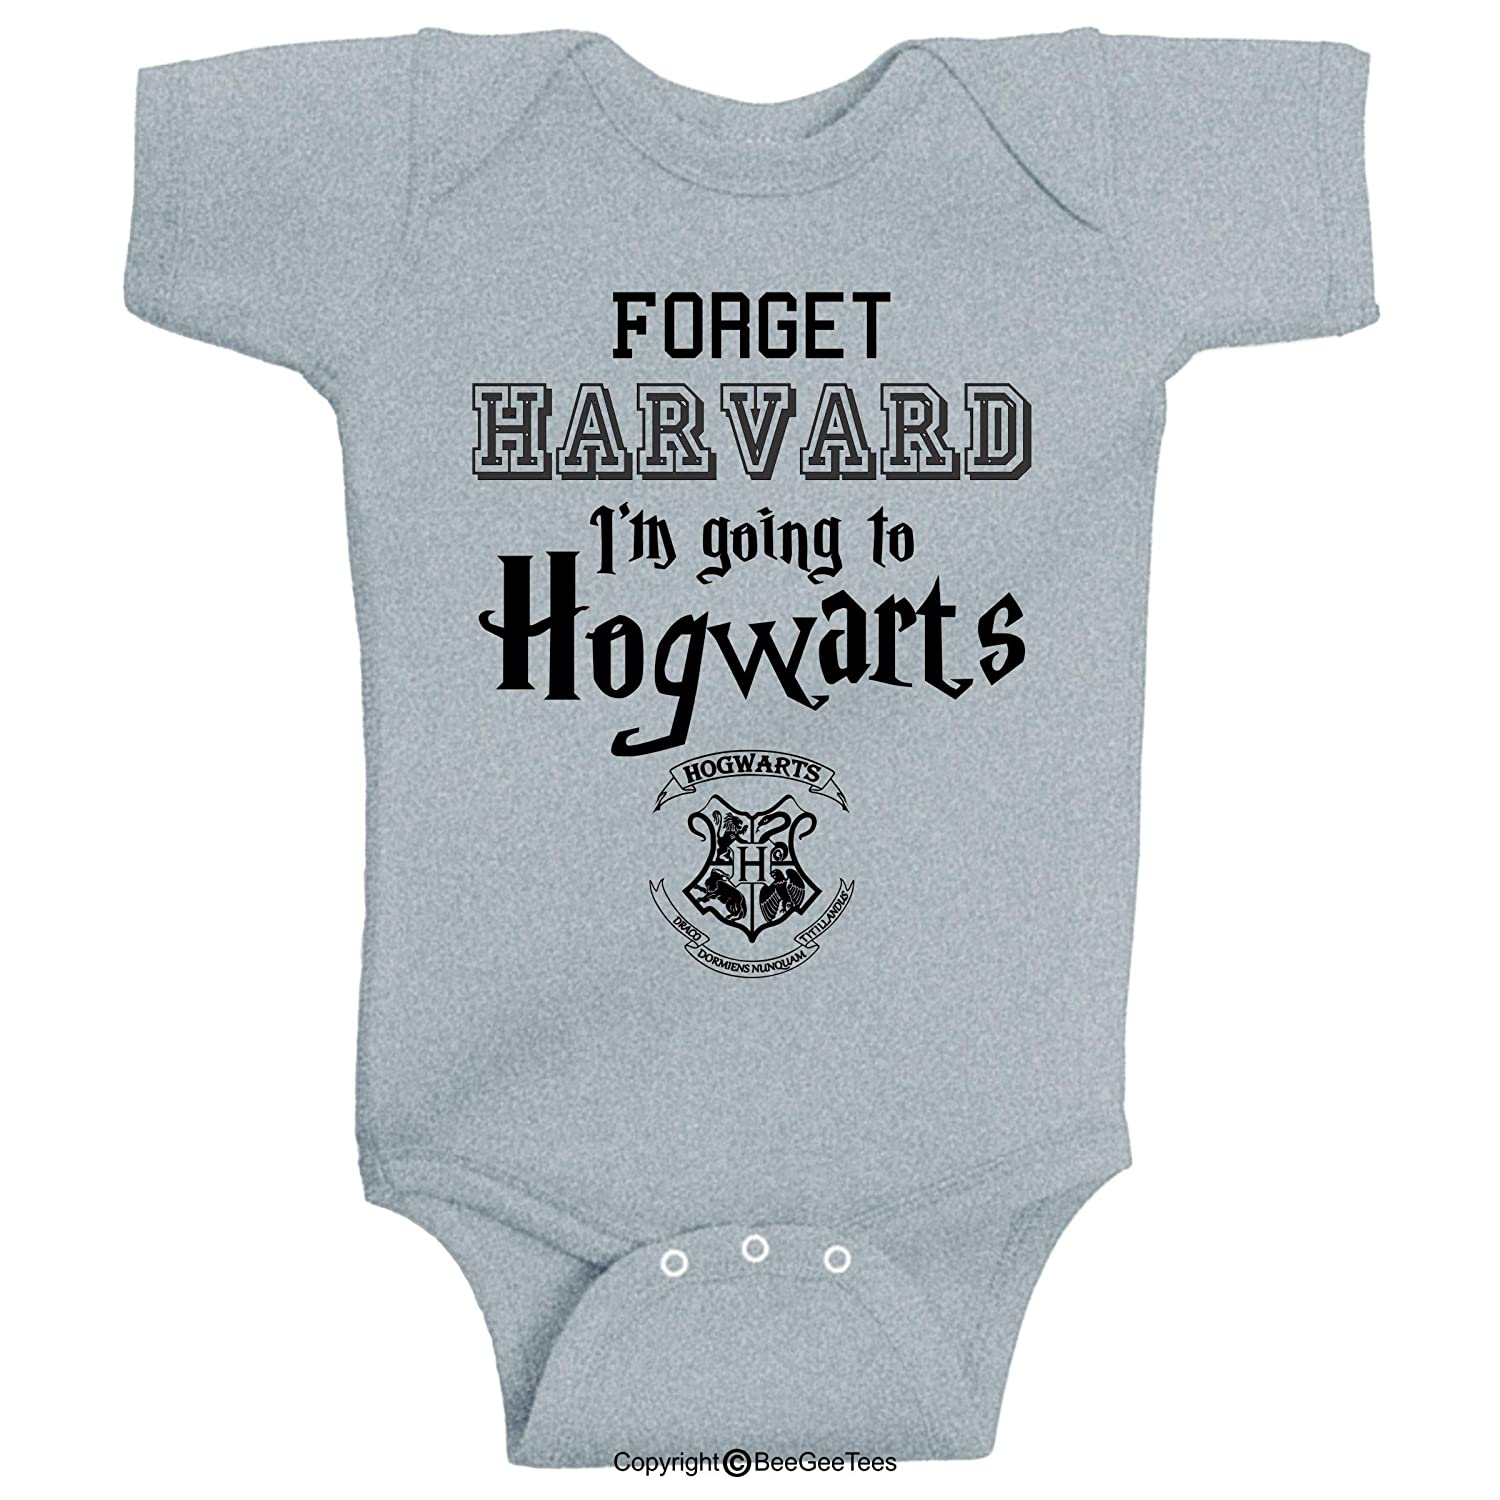 6 Months, White Forget Harvard Im Going to h0gwarts Funny Wizard Baby Wizard Onesie by BeeGeeTees